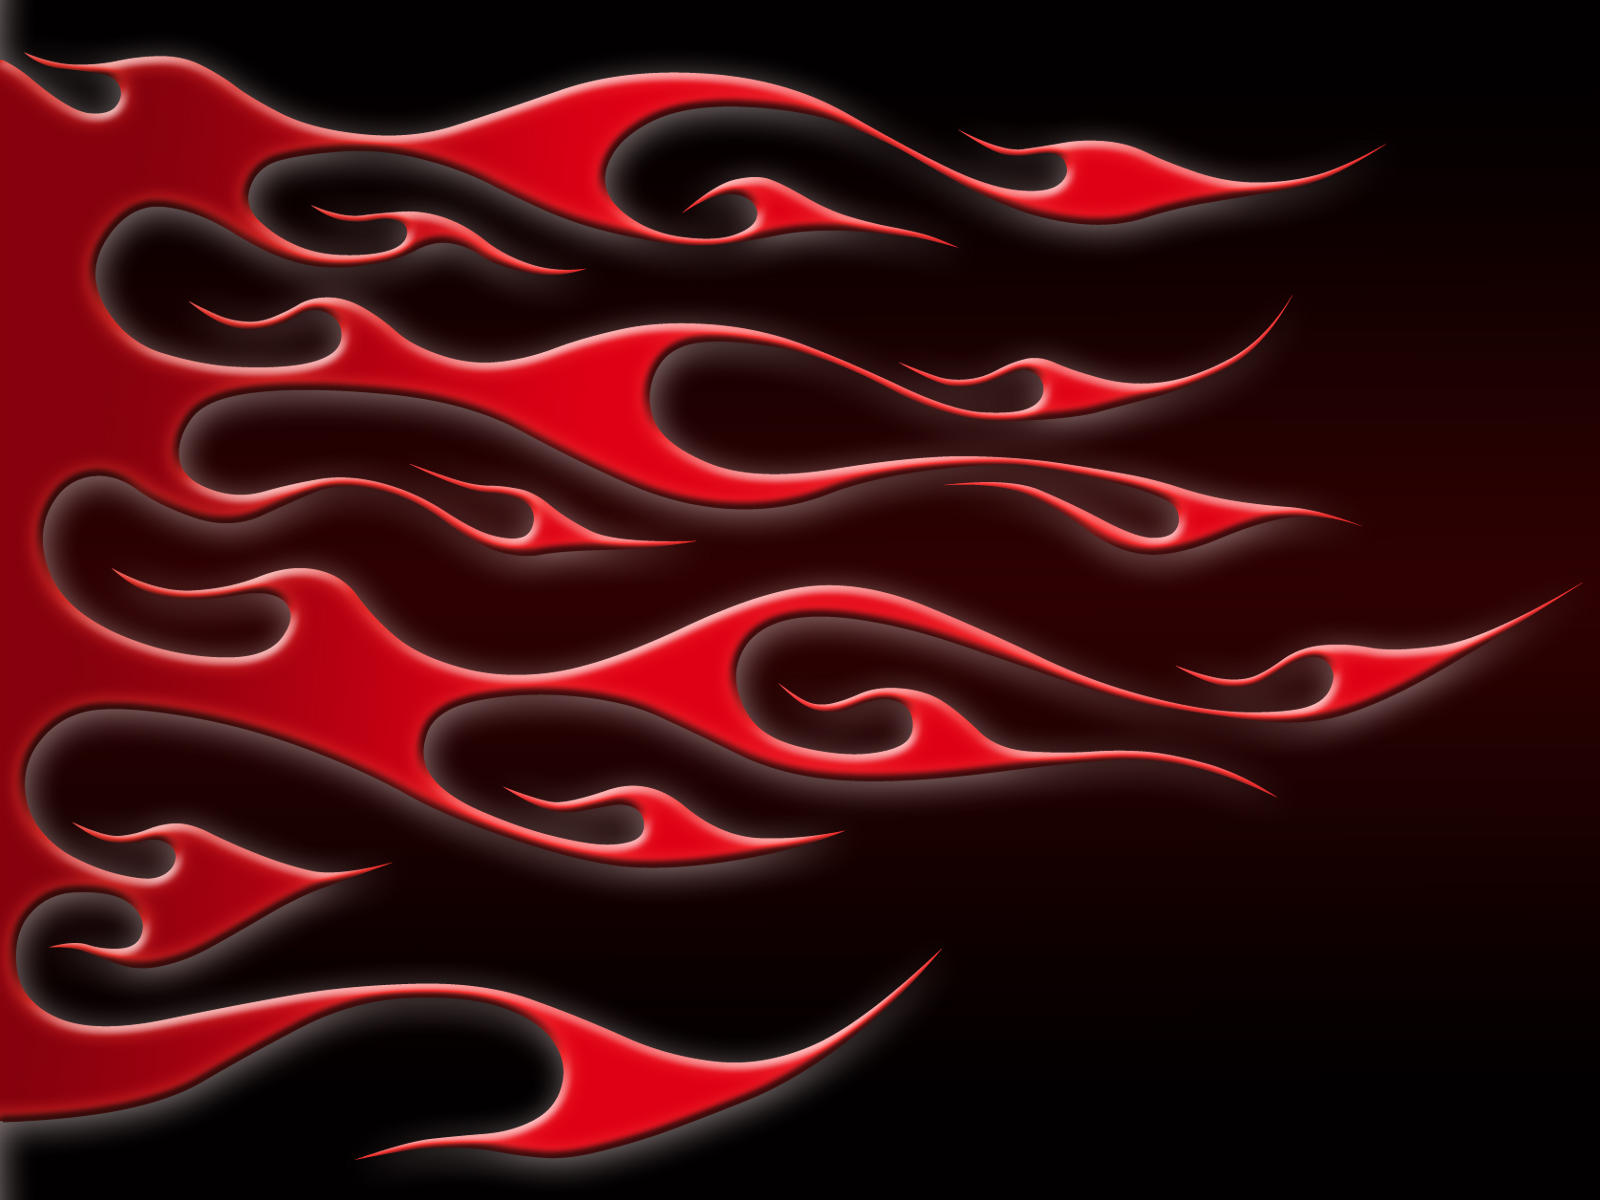 Red And Black Flames Wallpaper